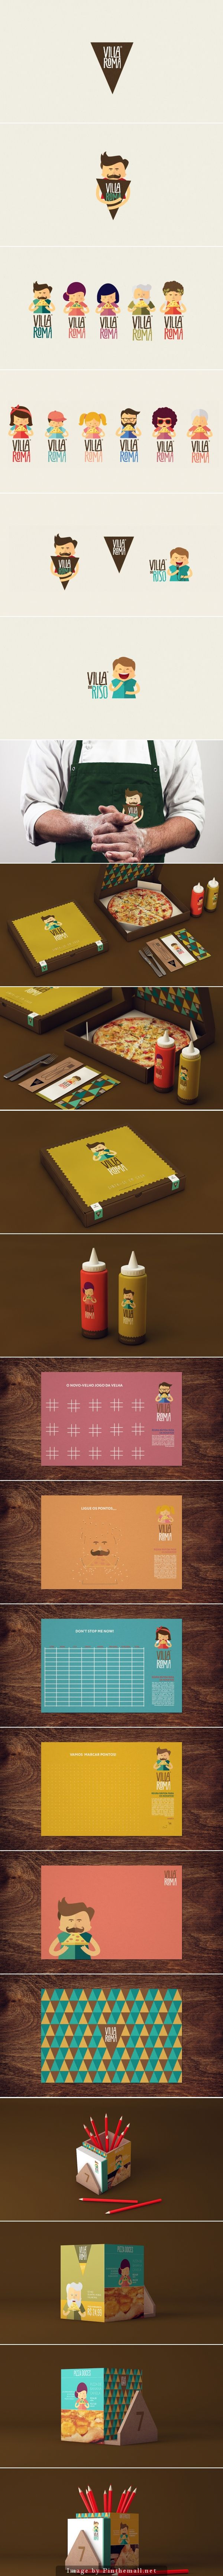 Villa Roma Branding by Isabela Rodrigues time for pizza #identity #packaging #branding PD